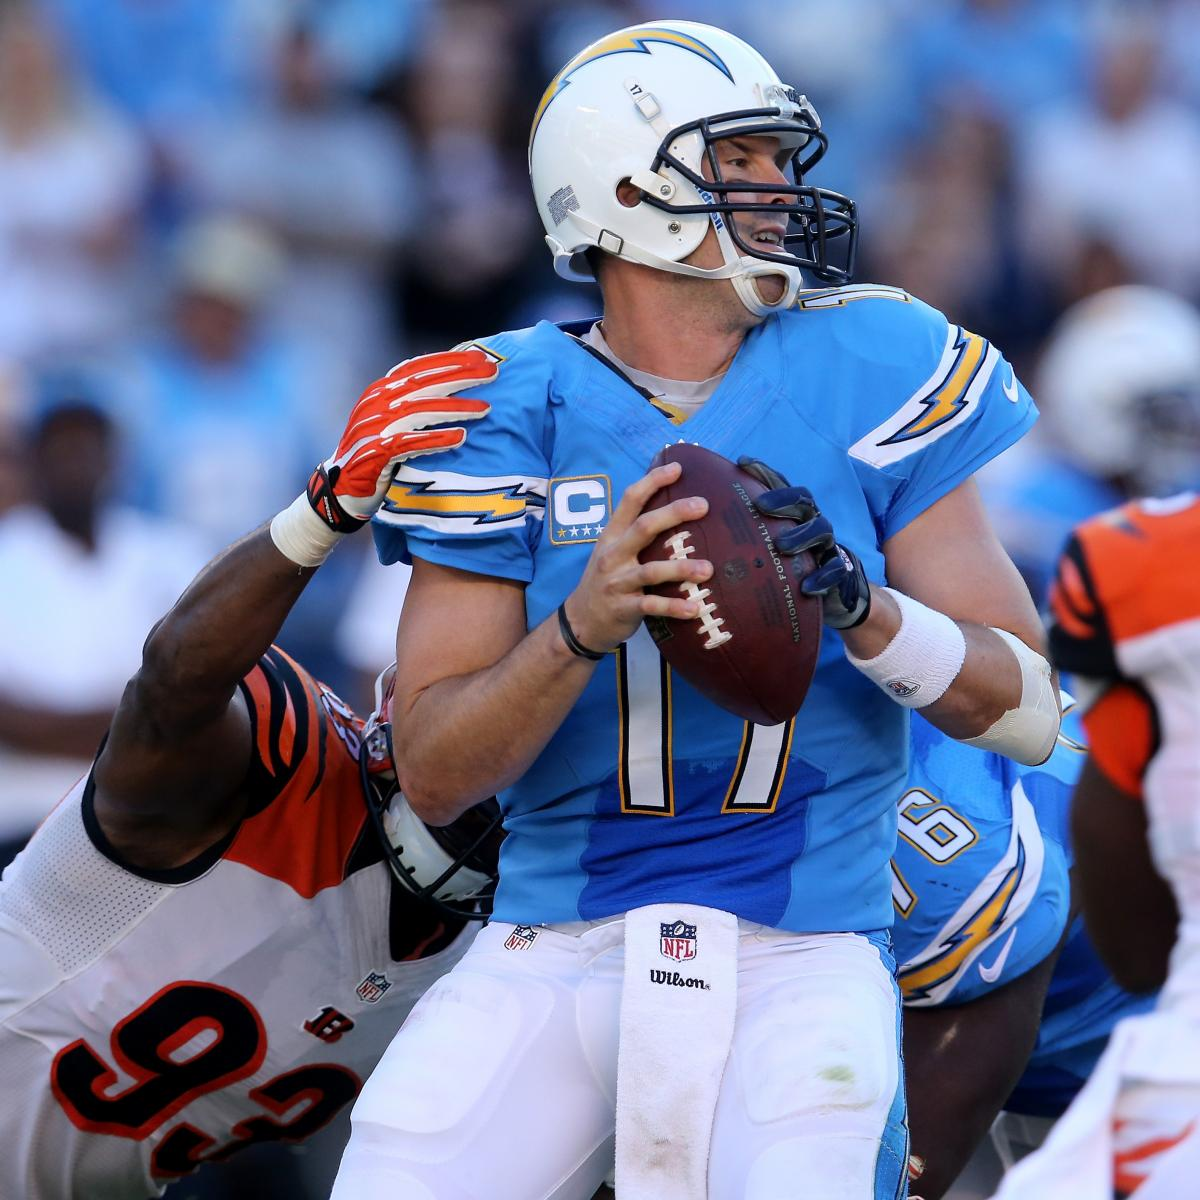 San Diego Chargers Final Score: NFL Wild Card Playoffs: What To Watch For In Sunday's